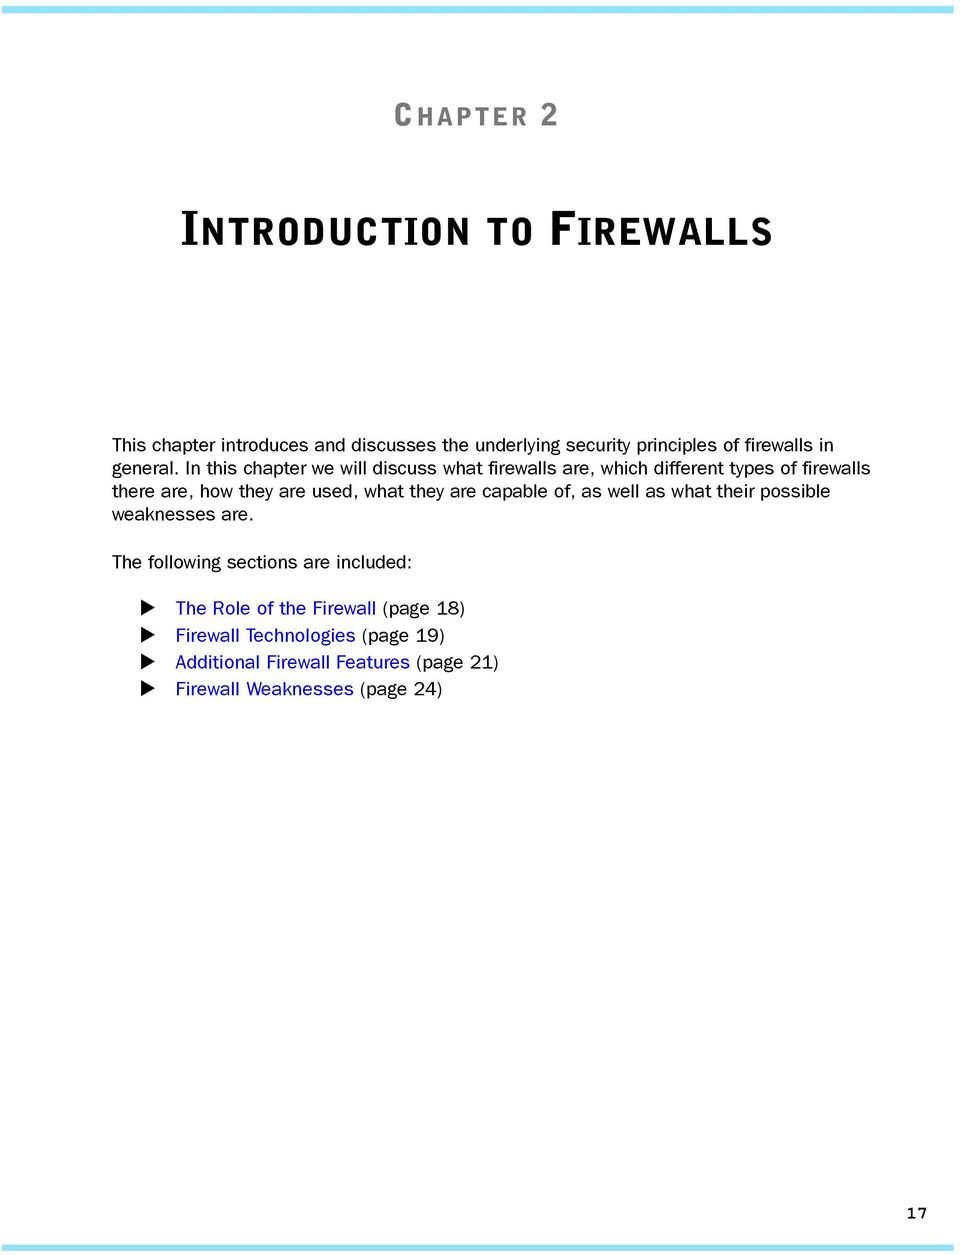 In this chapter we will discuss what firewalls are, which different types of firewalls there are, how they are used, what